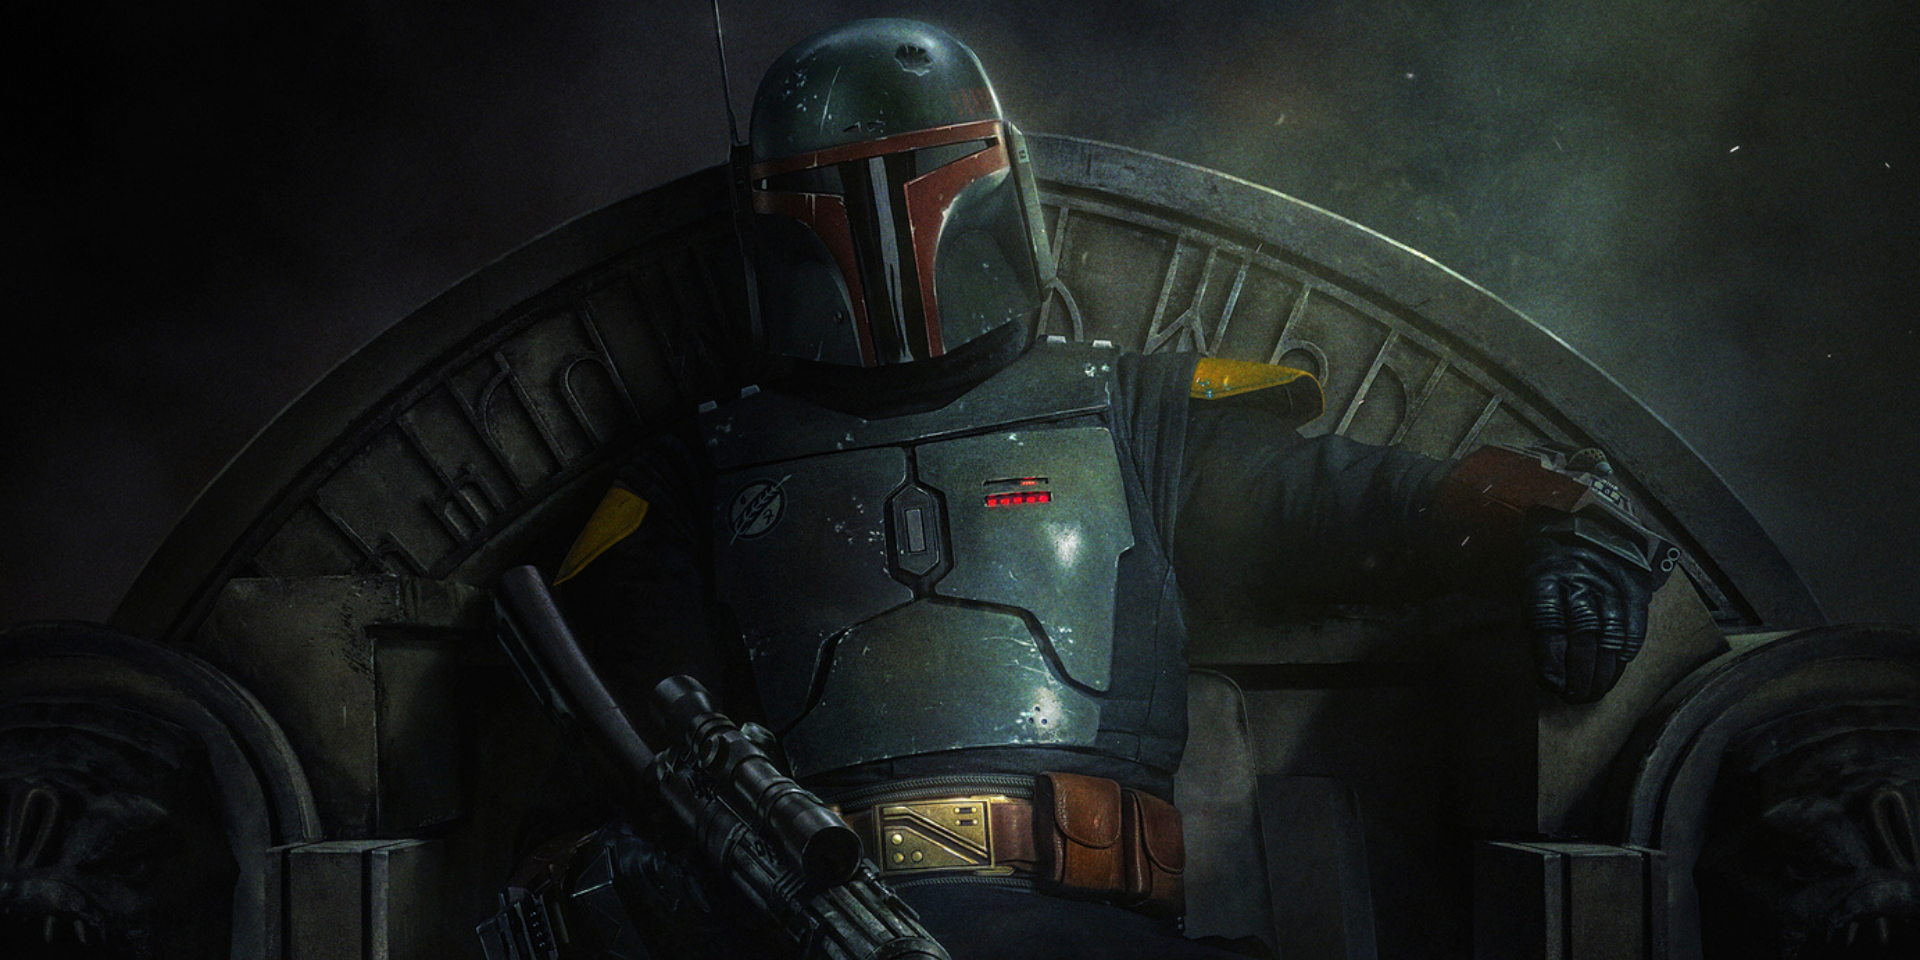 Star Wars series 'The Book Of Boba Fett' to premiere on Disney+  this December